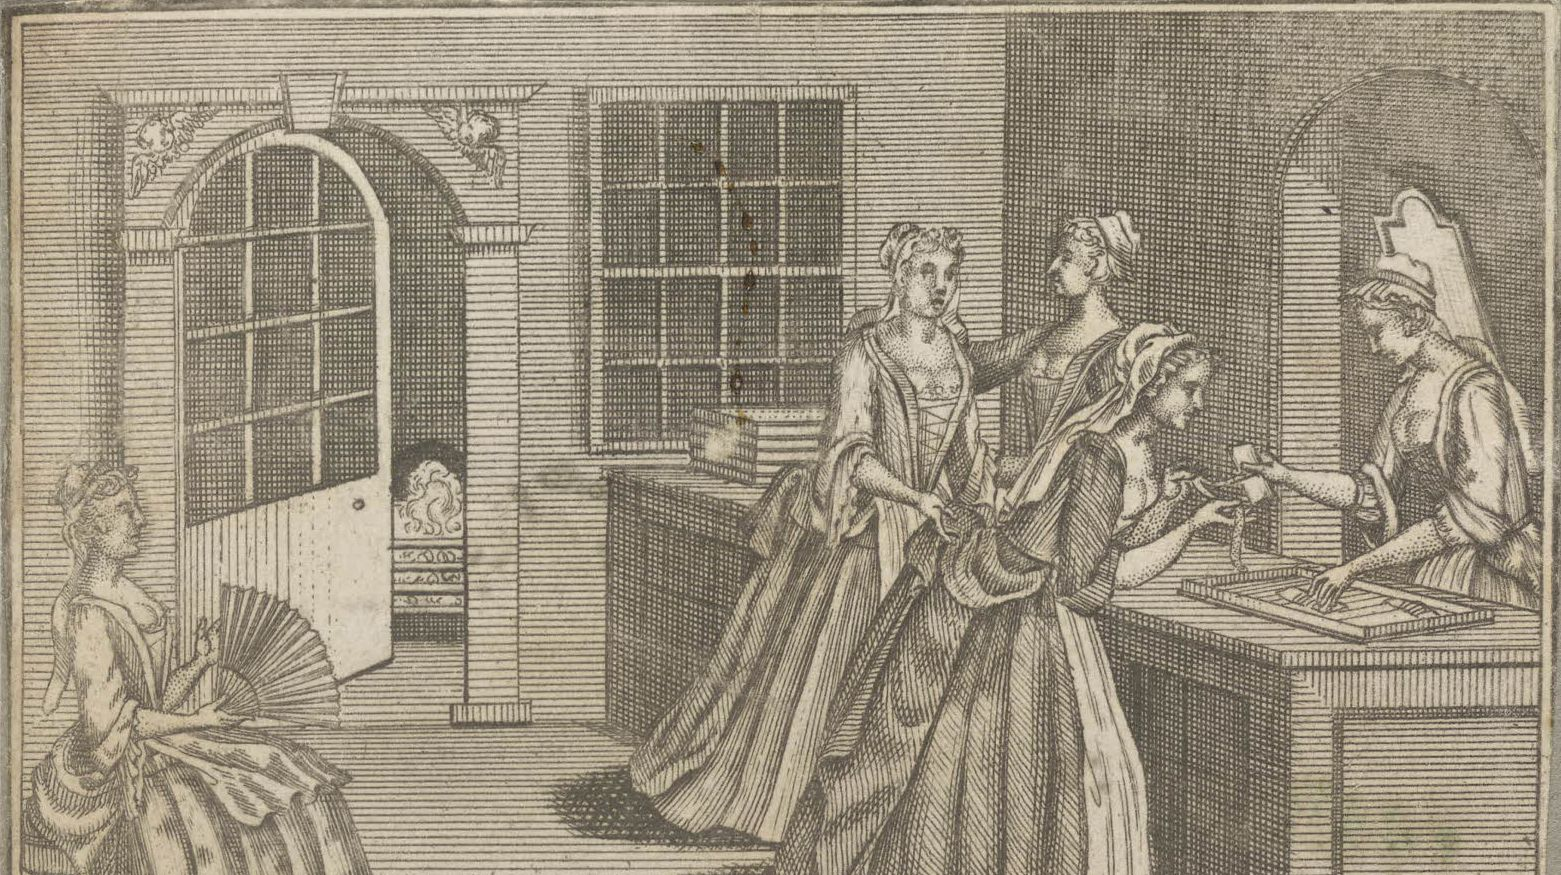 Trade card of Benjamin Cole, haberdasher (c.1720). © The Trustees of the British Museum